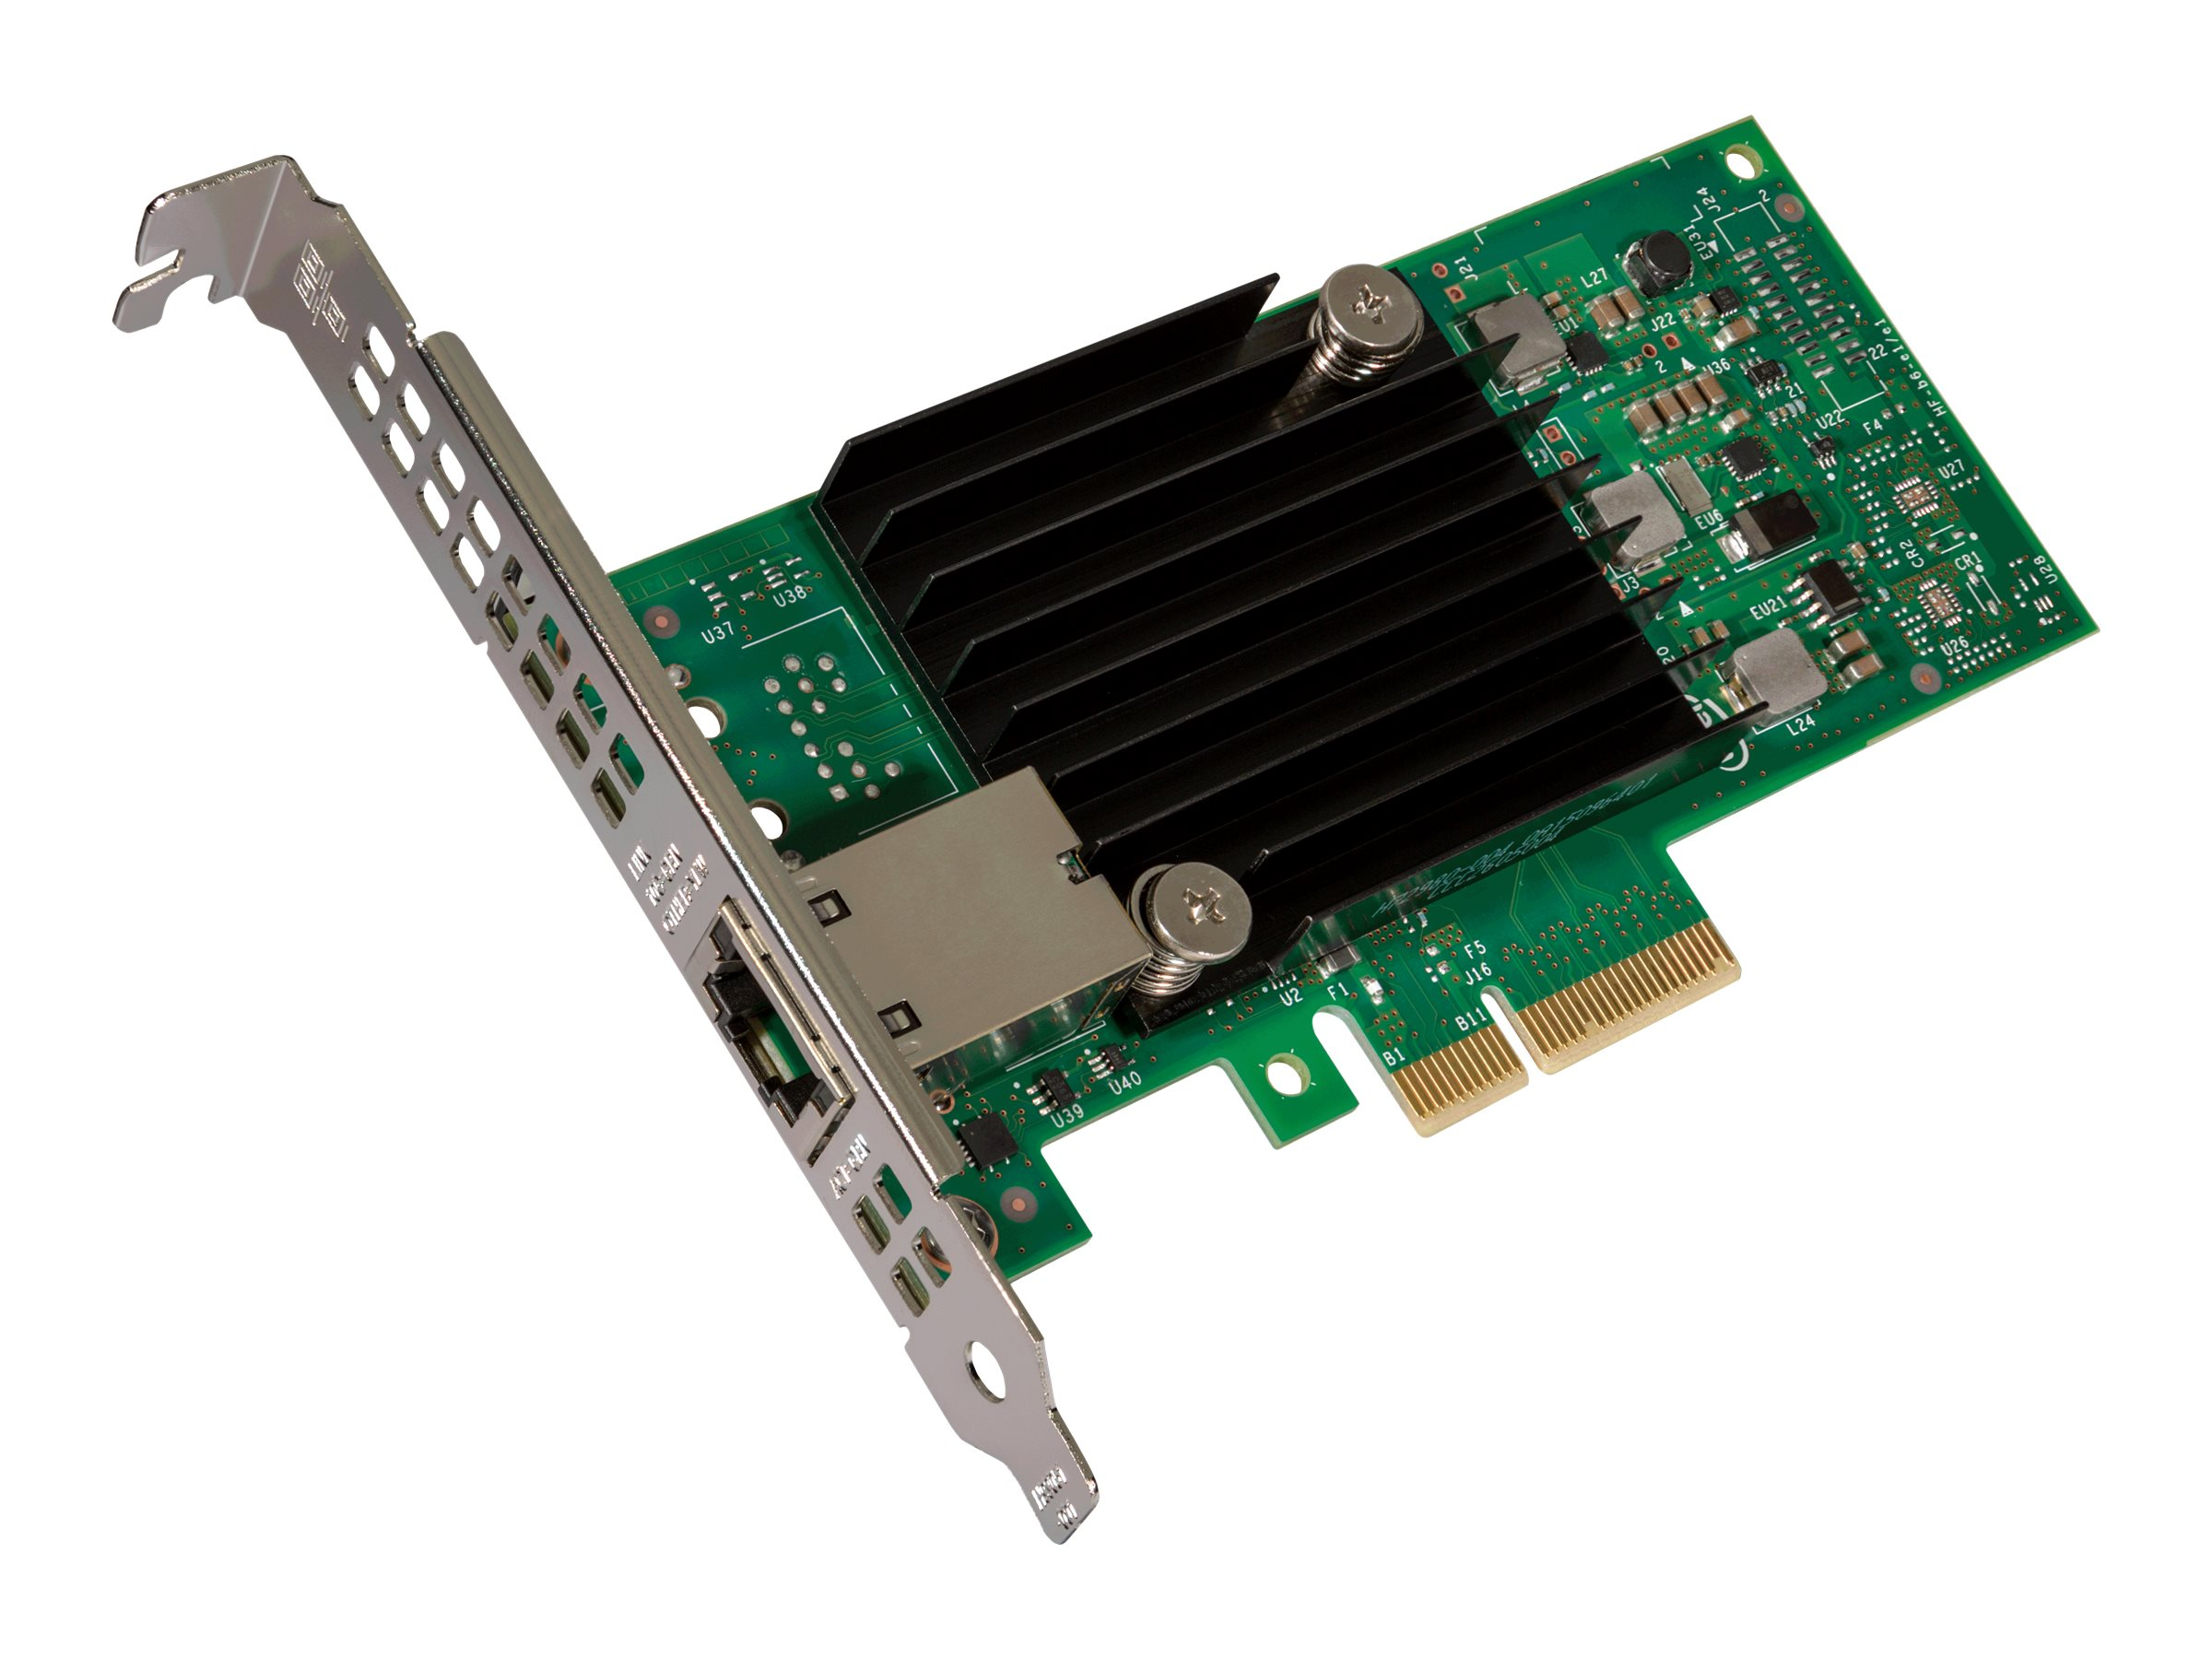 Intel Ethernet Converged Network Adapter X550-T1 - Netzwerkadapter - PCIe 3.0 x4 Low Profile - 10Gb Ethernet x 1